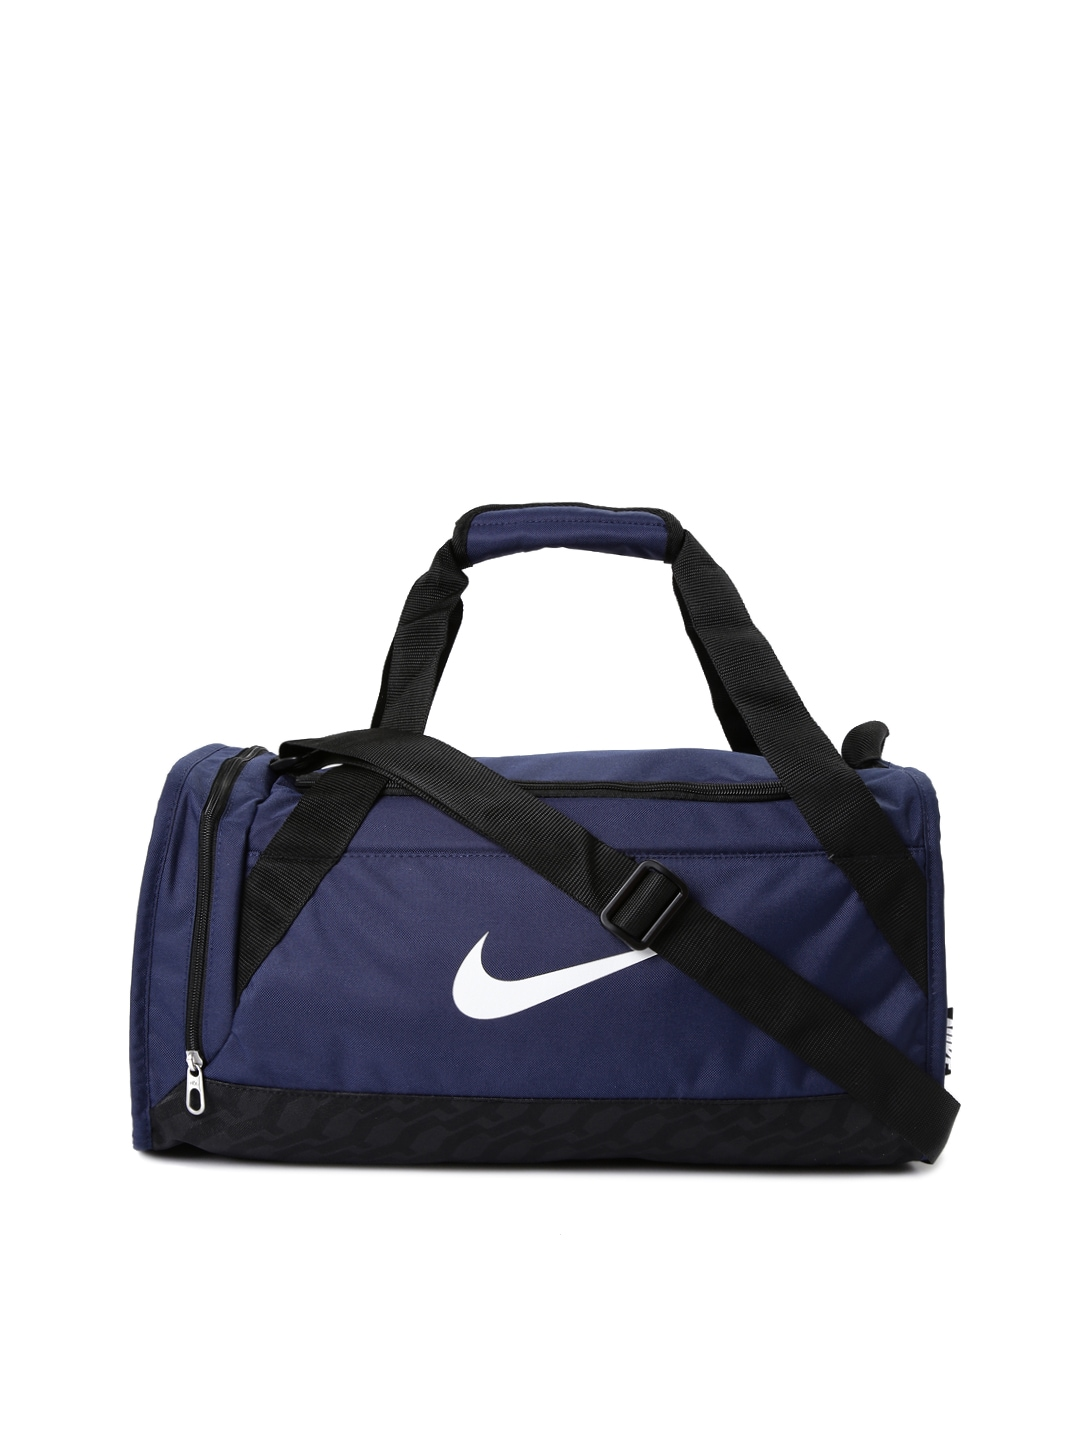 Nike Polyester Bags - Buy Nike Polyester Bags online in India 6546f6a1ebdd6